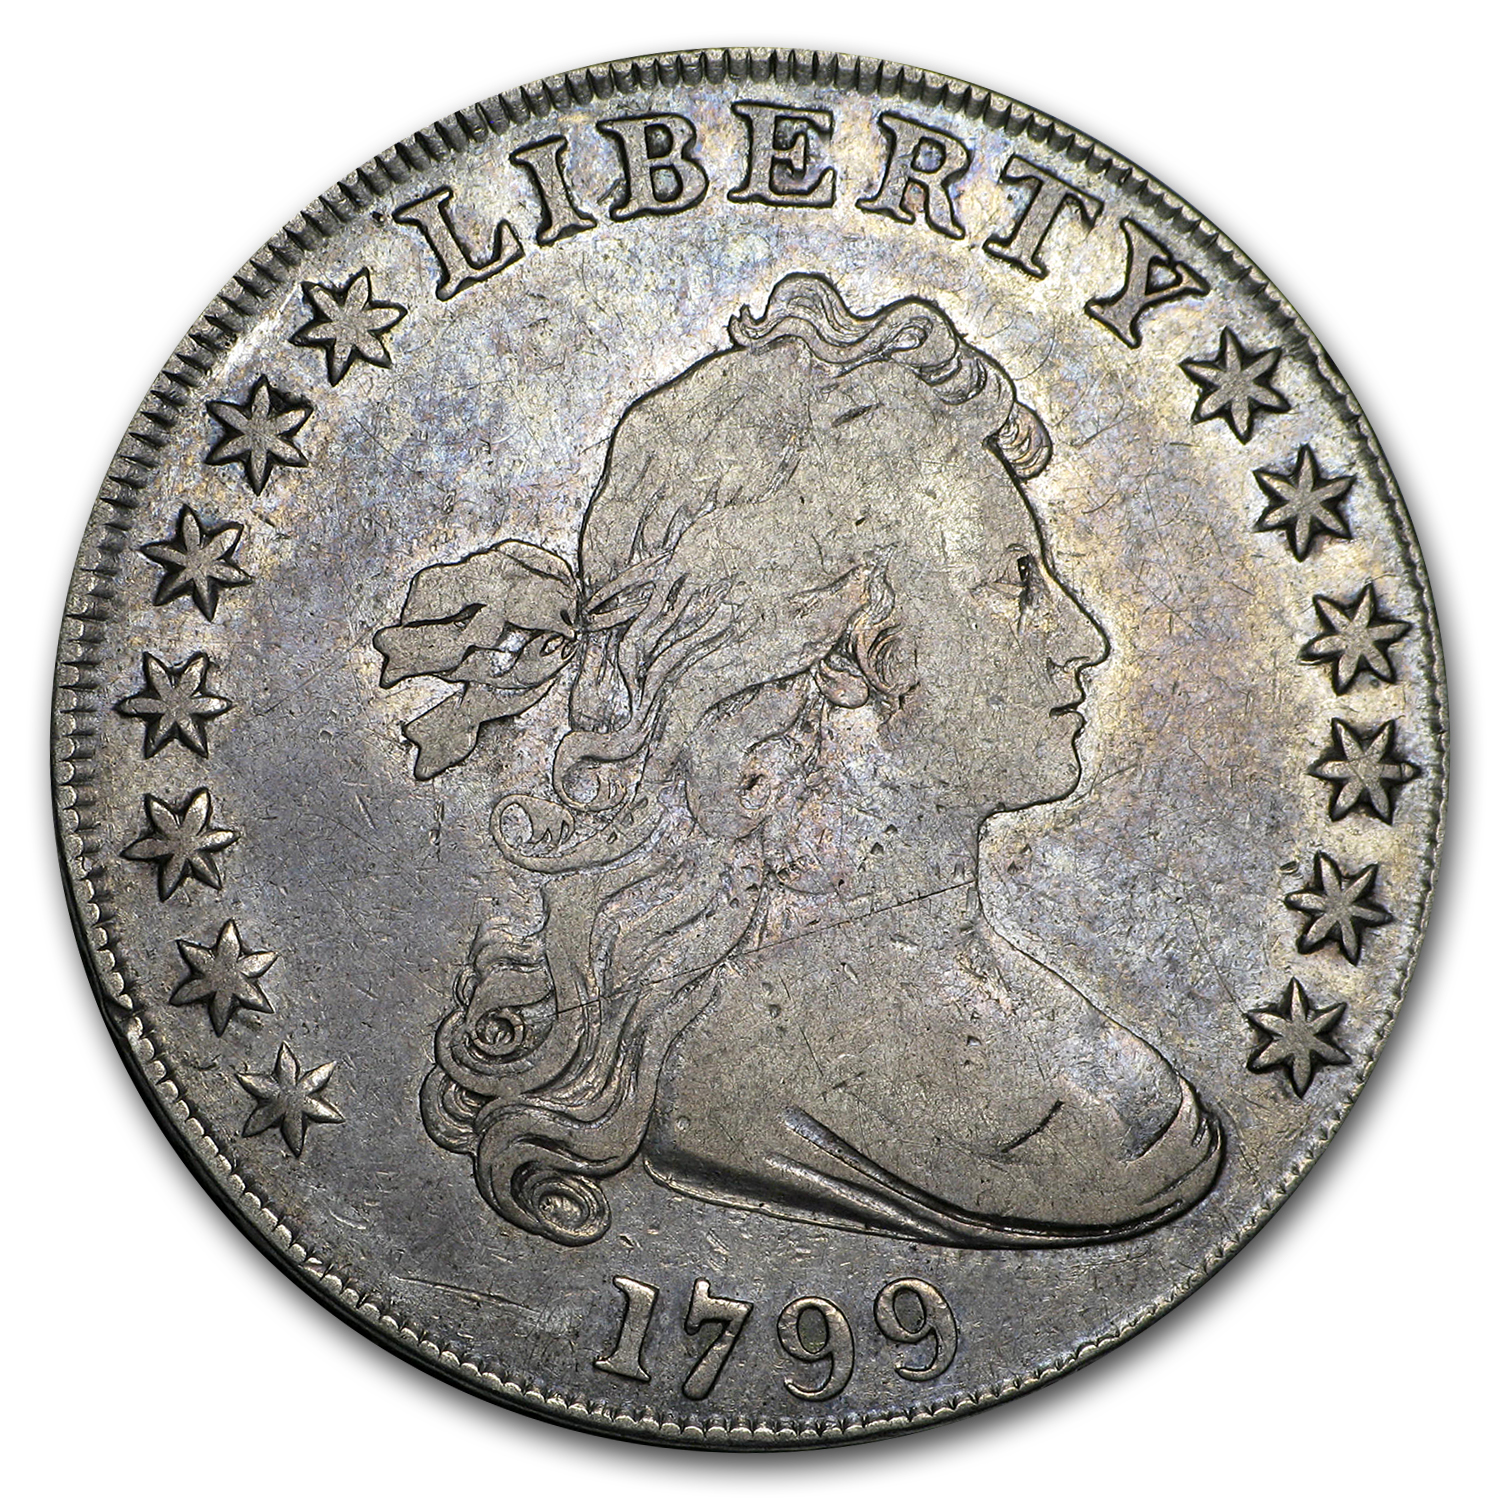 1799 Draped Bust Dollar - Fine